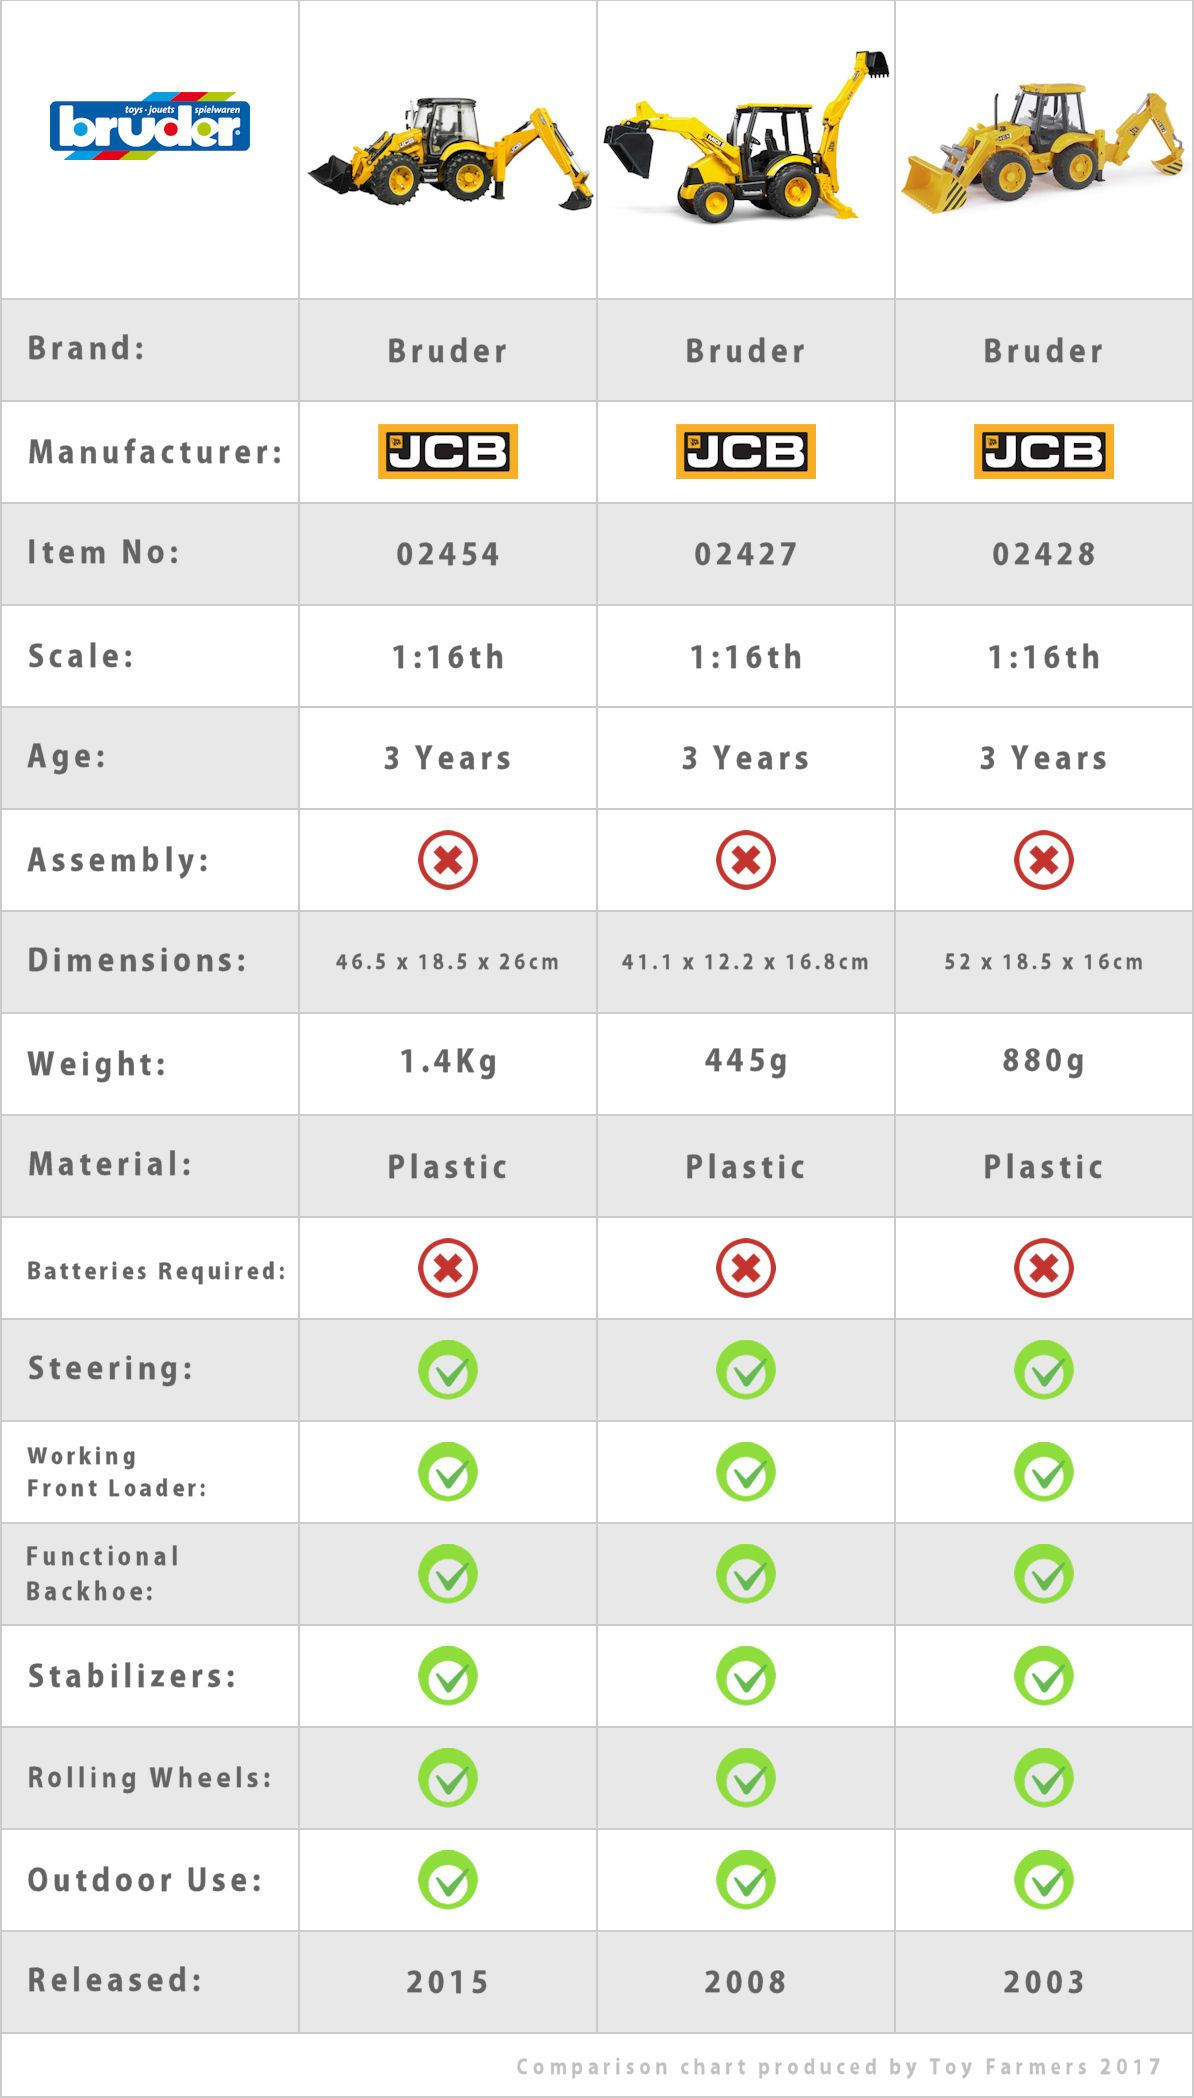 Bruder backhoes comparison chart graphic